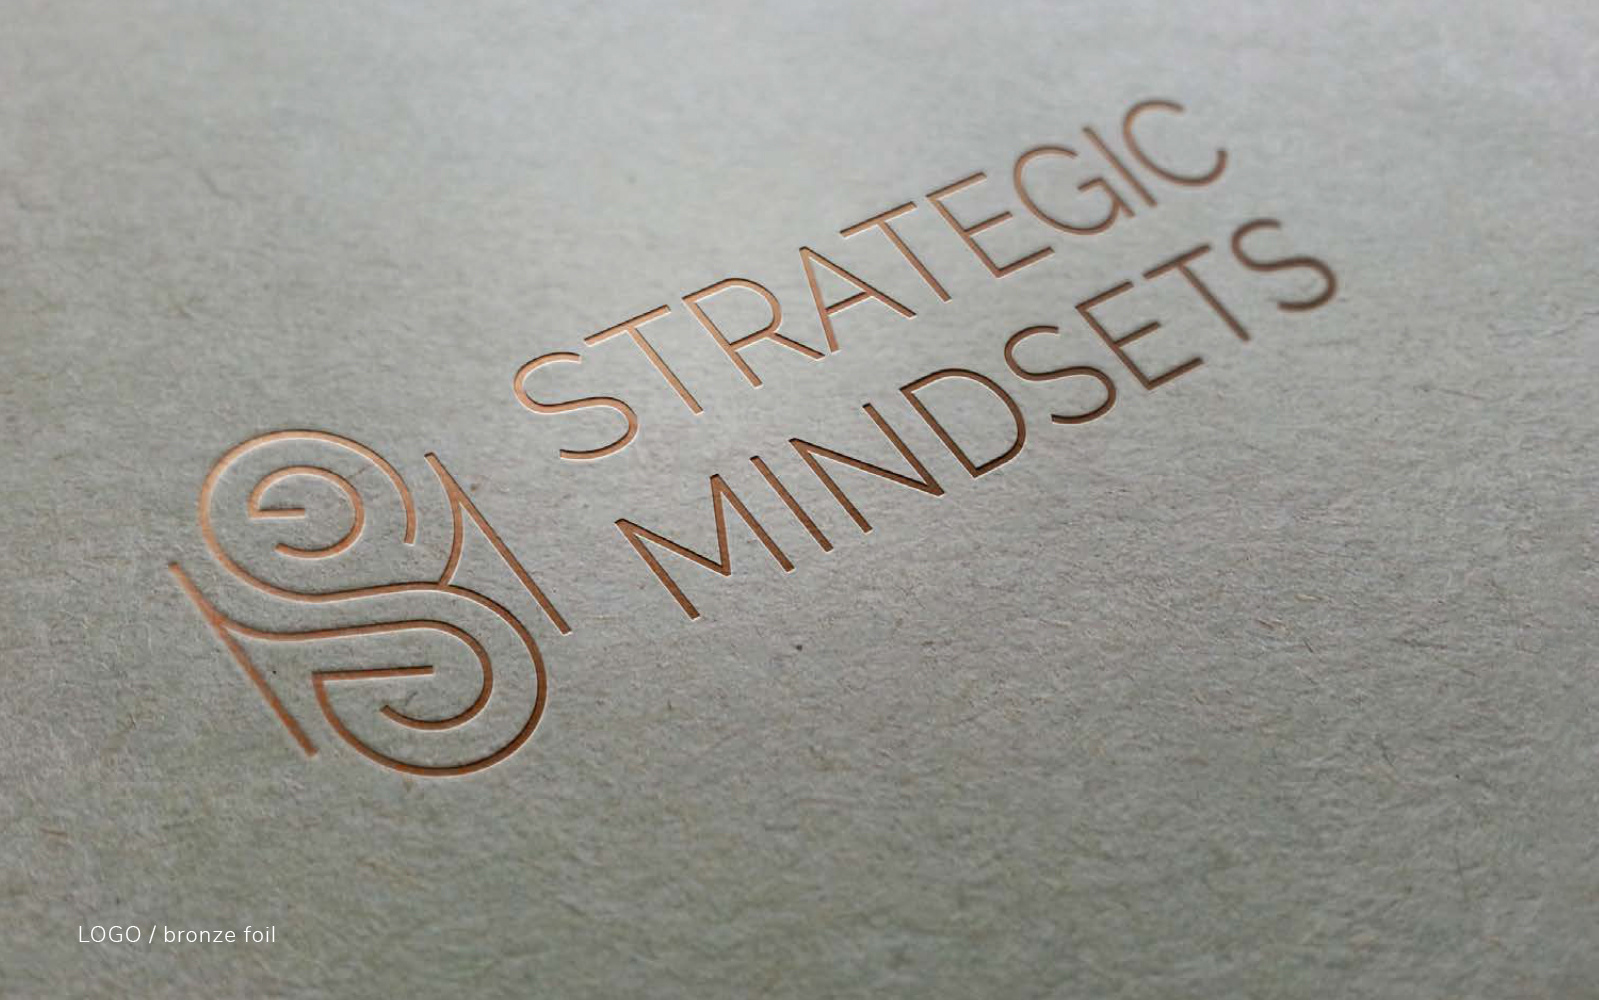 the-collective-one-strategic-mindsets-8